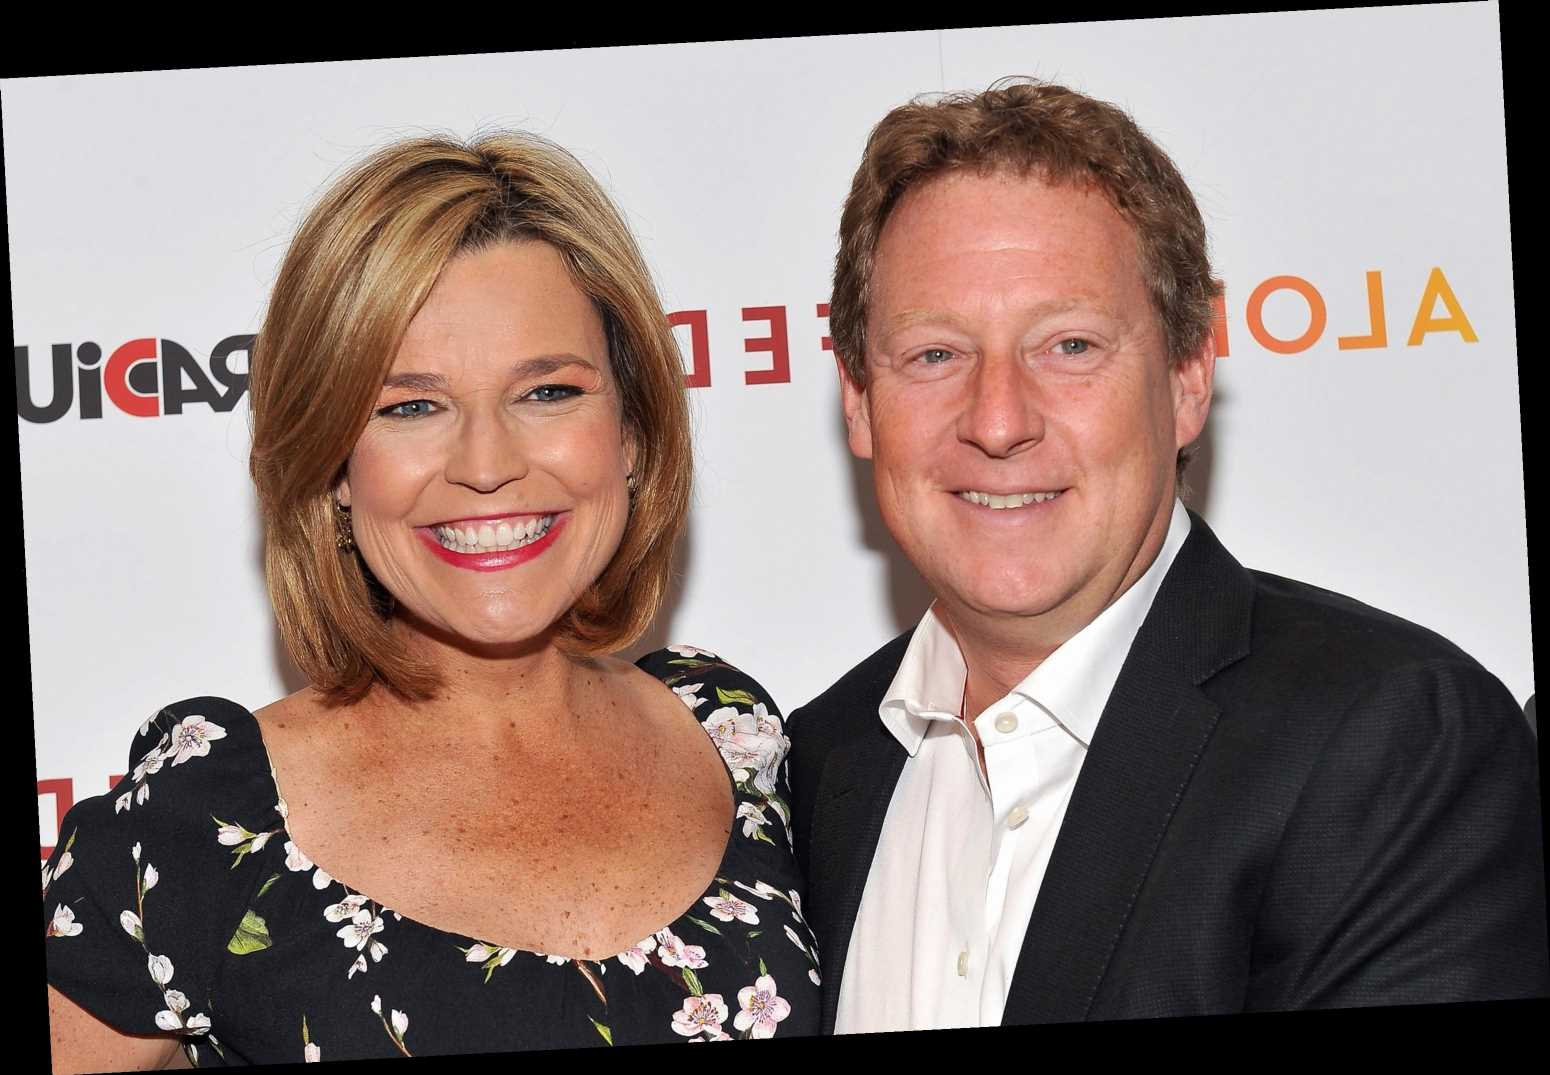 Who is Savannah Guthrie's husband Michael Feldman and what's his net worth?